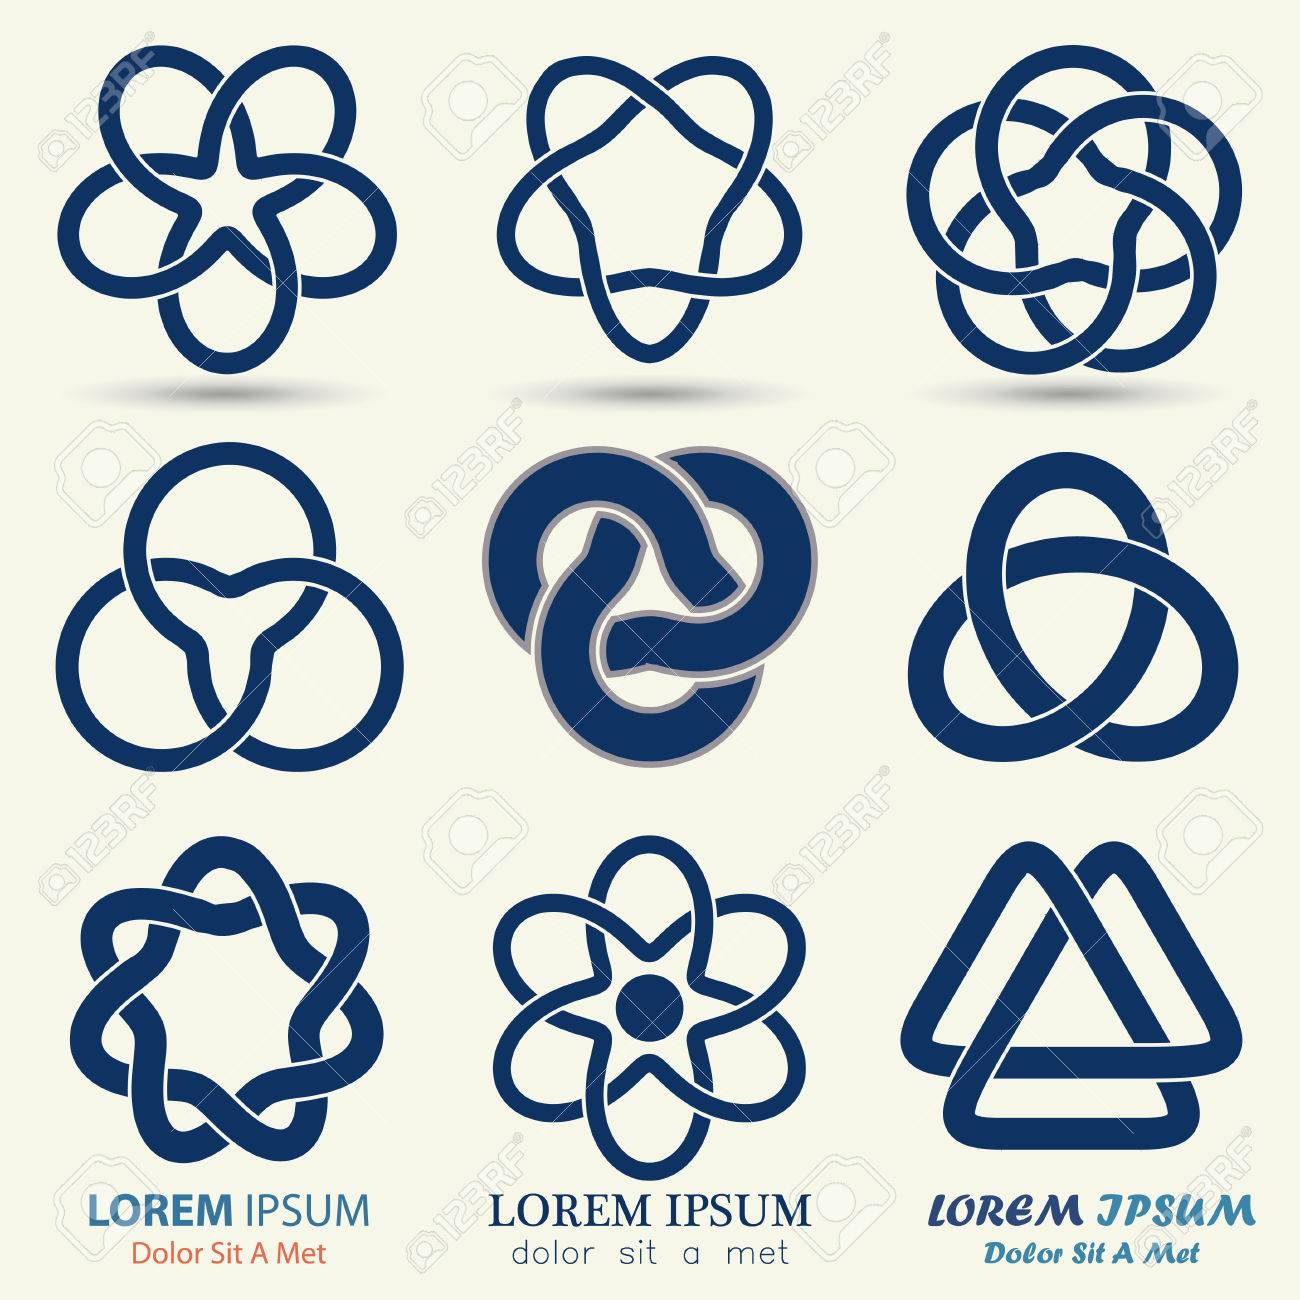 44120 knot stock illustrations cliparts and royalty free knot business emblem set blue knot symbol curve looped icon vector illustration biocorpaavc